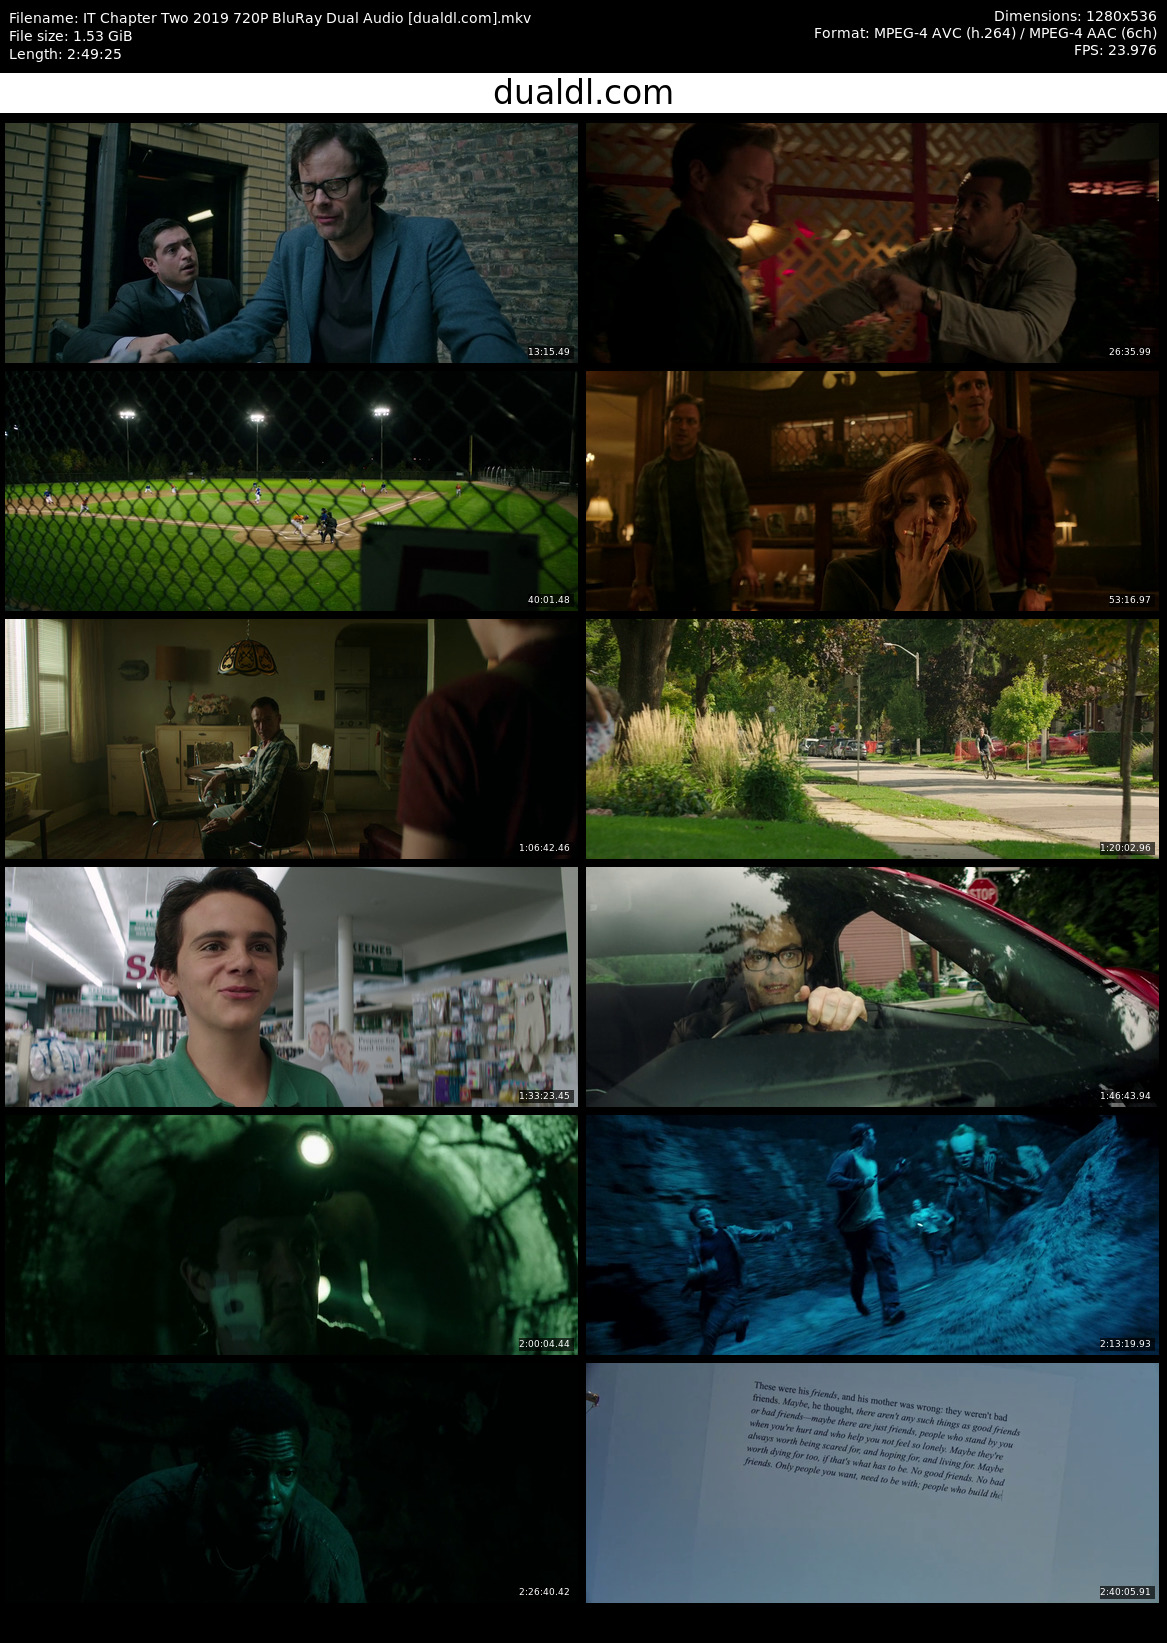 IT Chapter Two 2019 720P BluRay Dual Audio Download